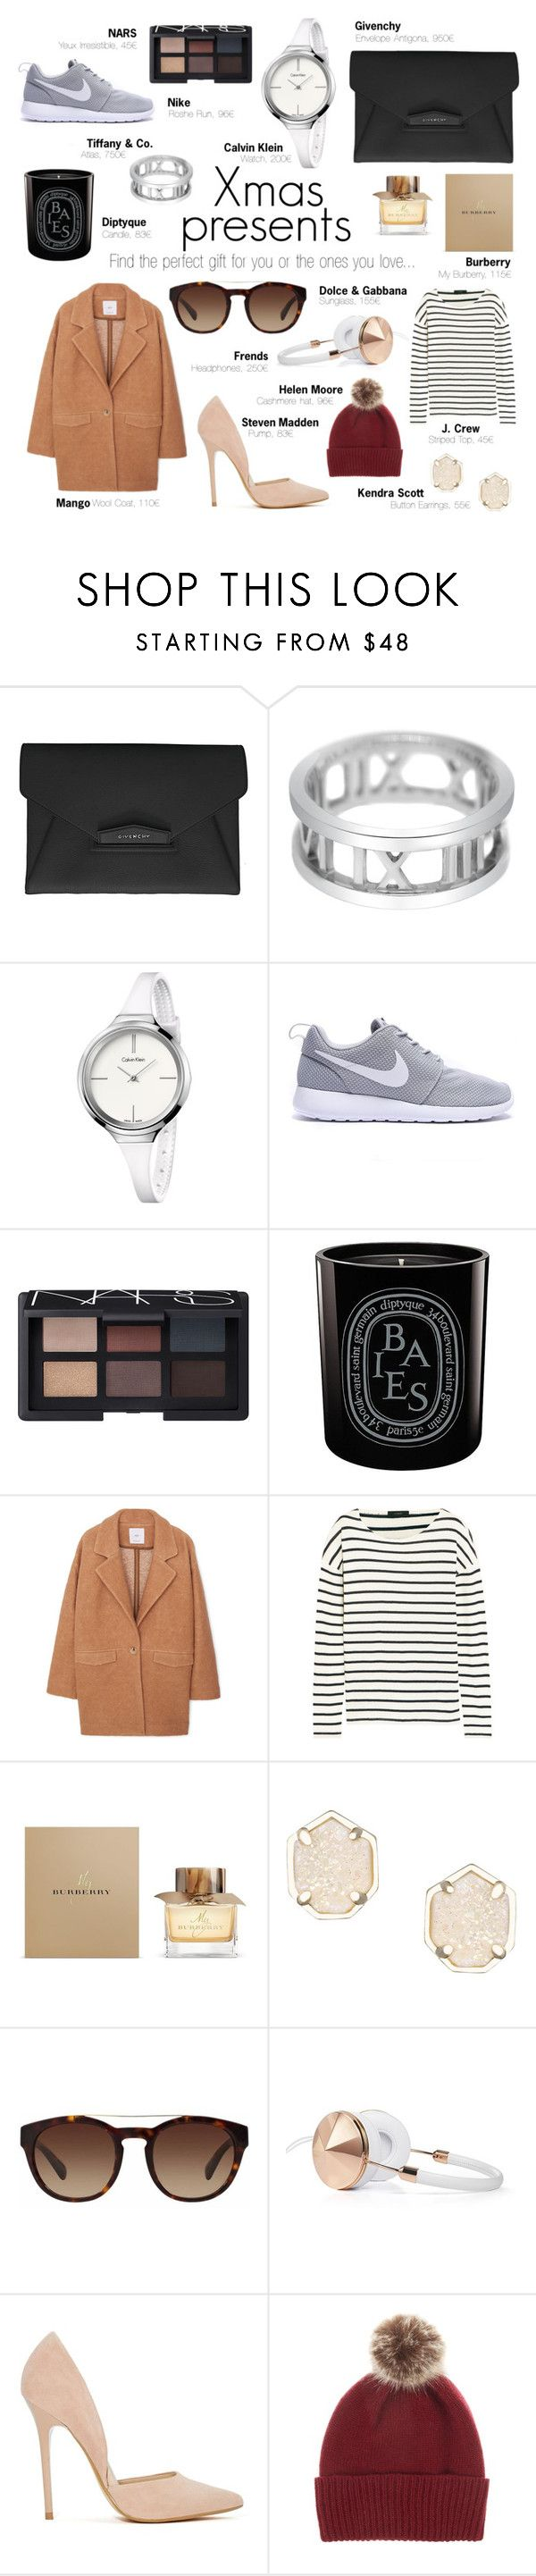 """""""My Christmas Gifts Selection"""" by lisa-campolunghi on Polyvore featuring moda, Givenchy, Tiffany & Co., Calvin Klein, NARS Cosmetics, Diptyque, MANGO, J.Crew, Burberry e Kendra Scott"""